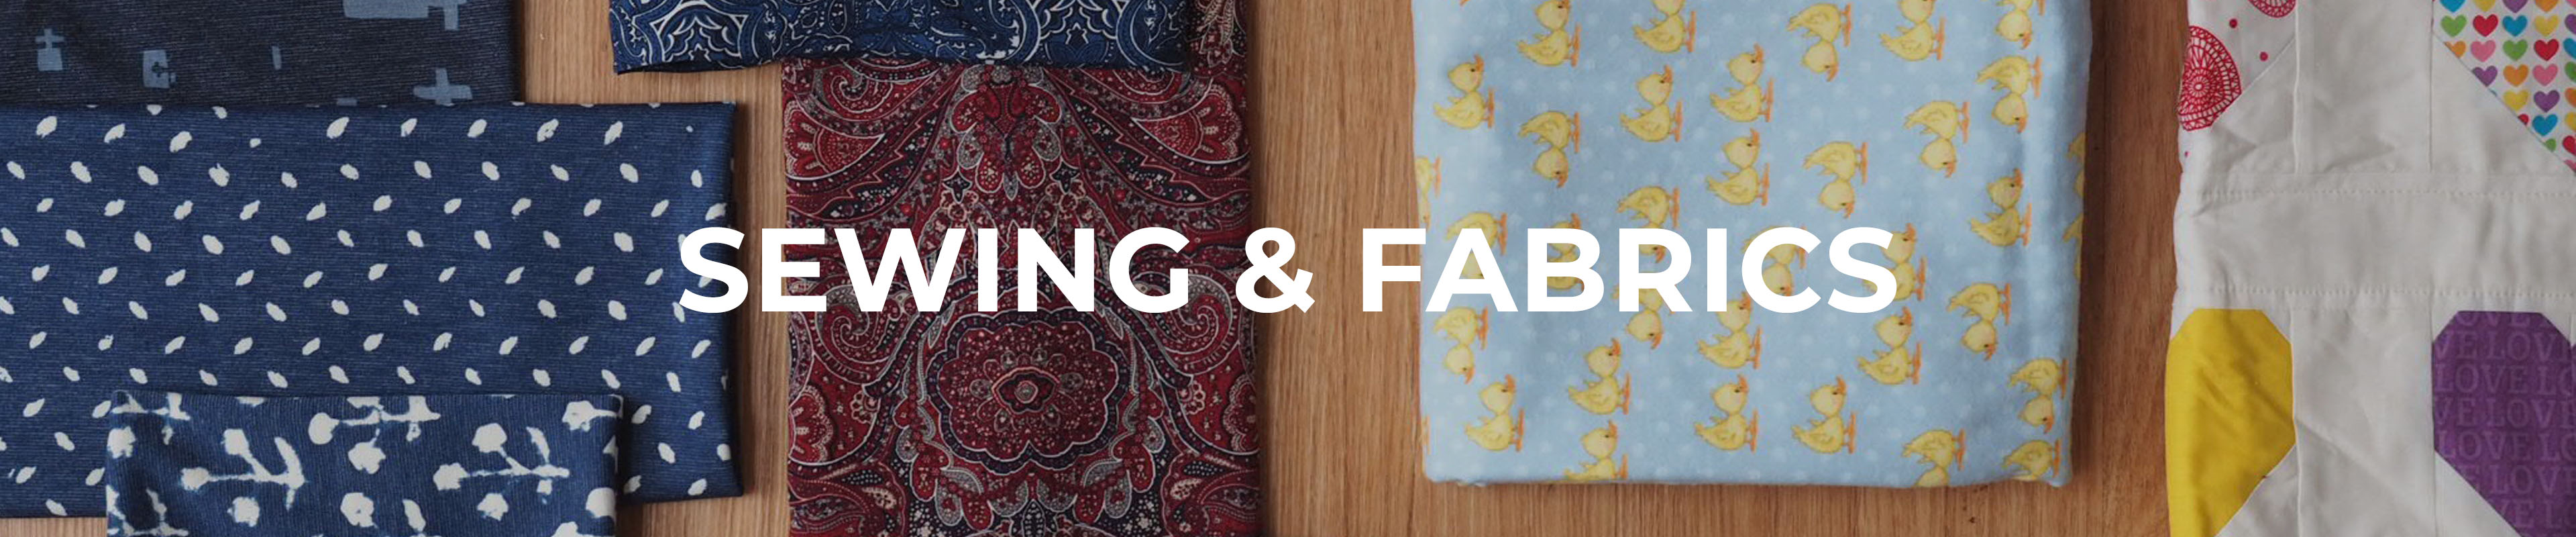 Shop Our Sewing & Fabrics Range